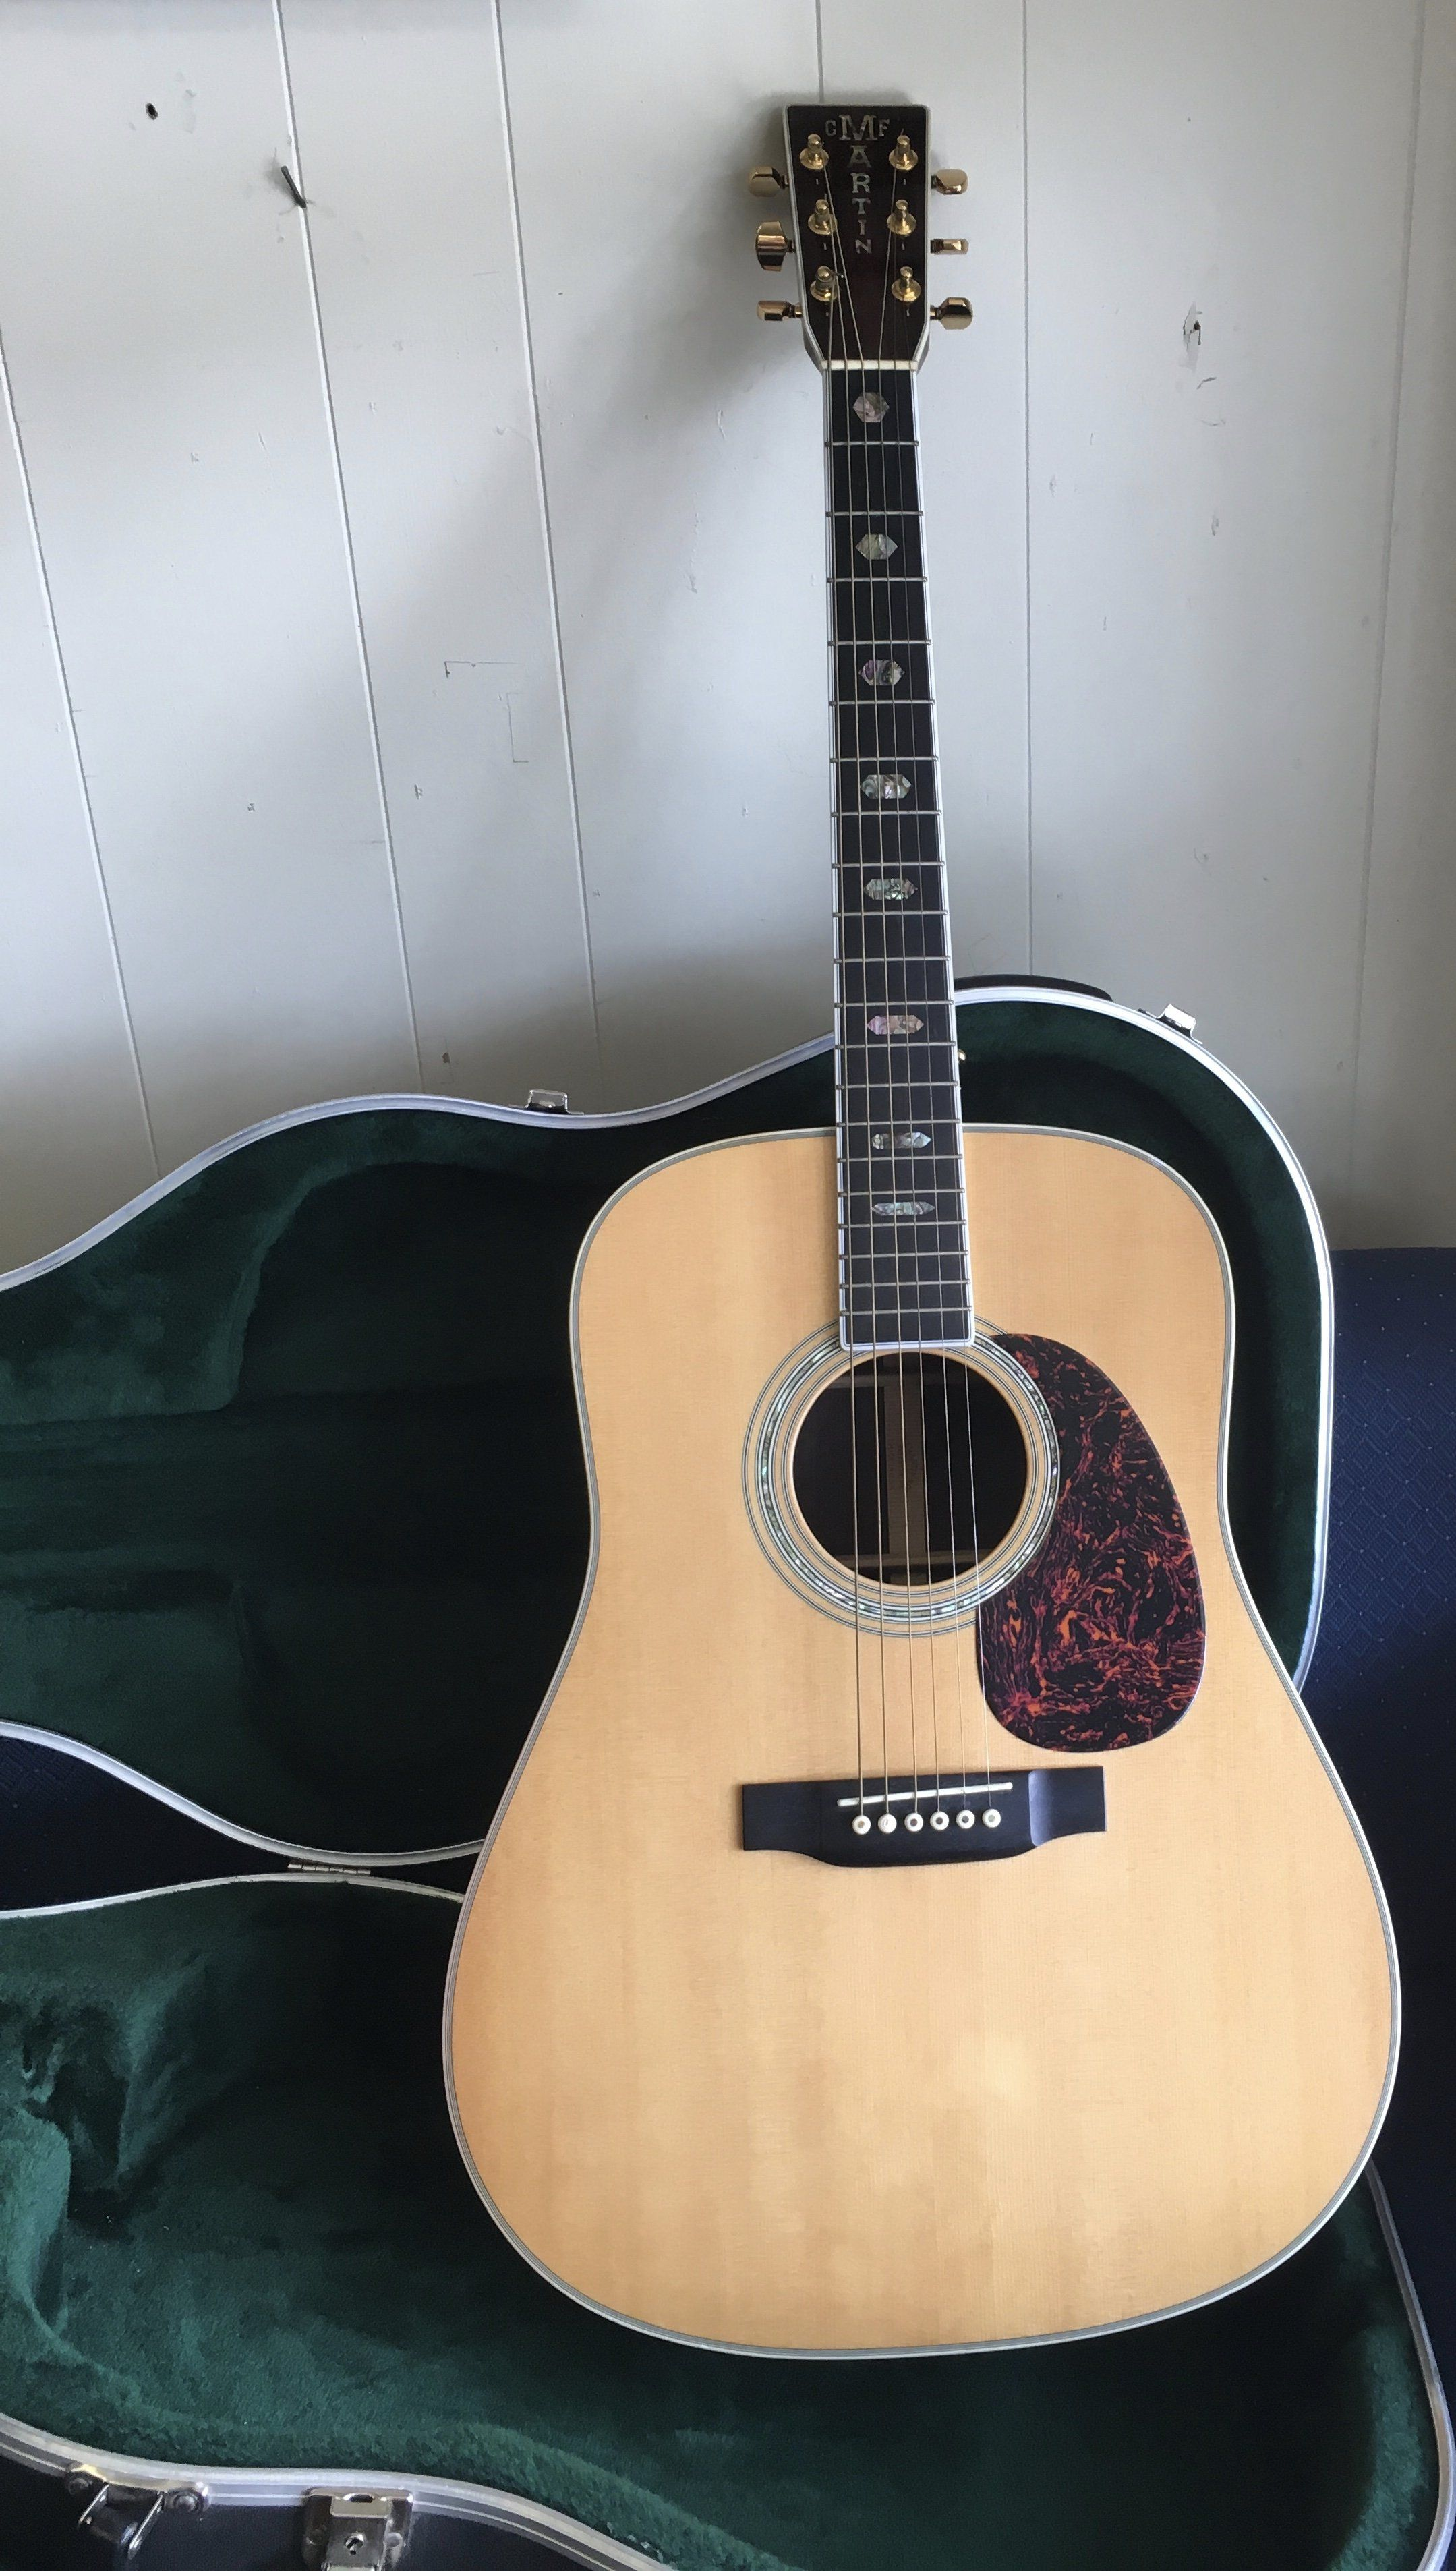 Martin D 40 Dreadnaught Acoustic Guitar Used With Hardshell Case Acoustic Guitar Lessons Learn Acoustic Guitar Guitar